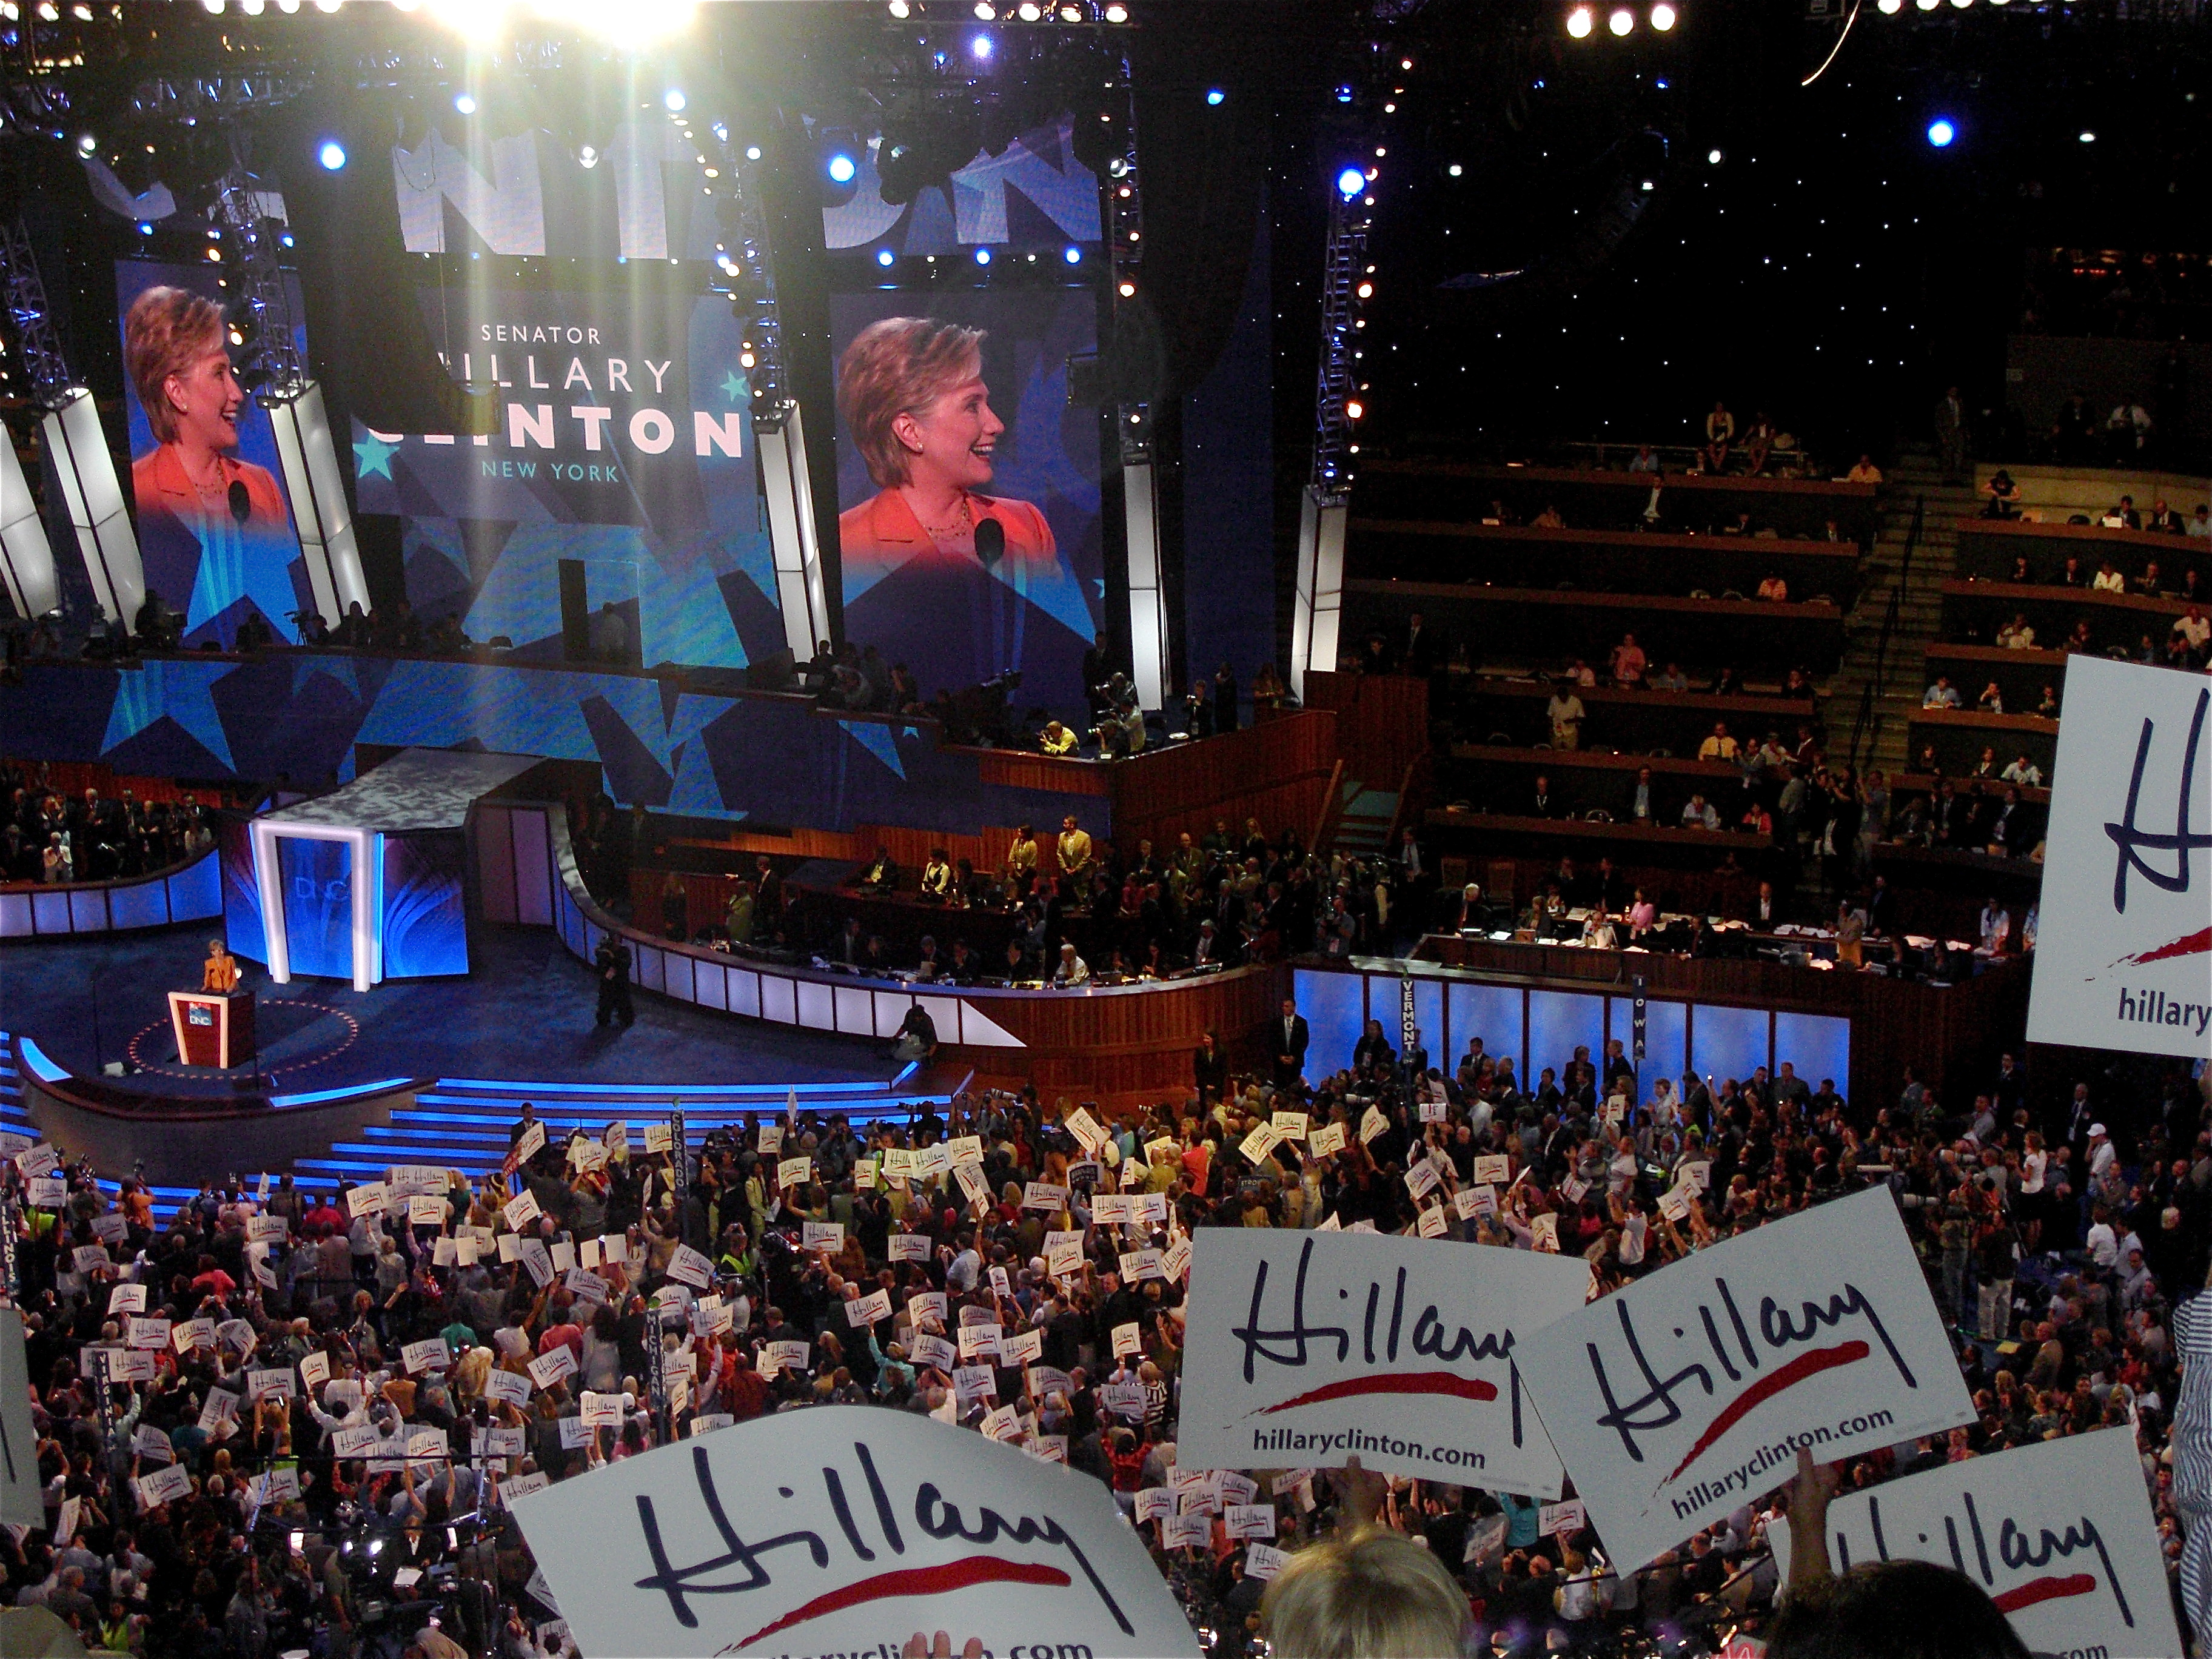 Clinton speaks on behalf of her former rival, Barack Obama, during the second night of the 2008 Democratic National Convention in Denver.